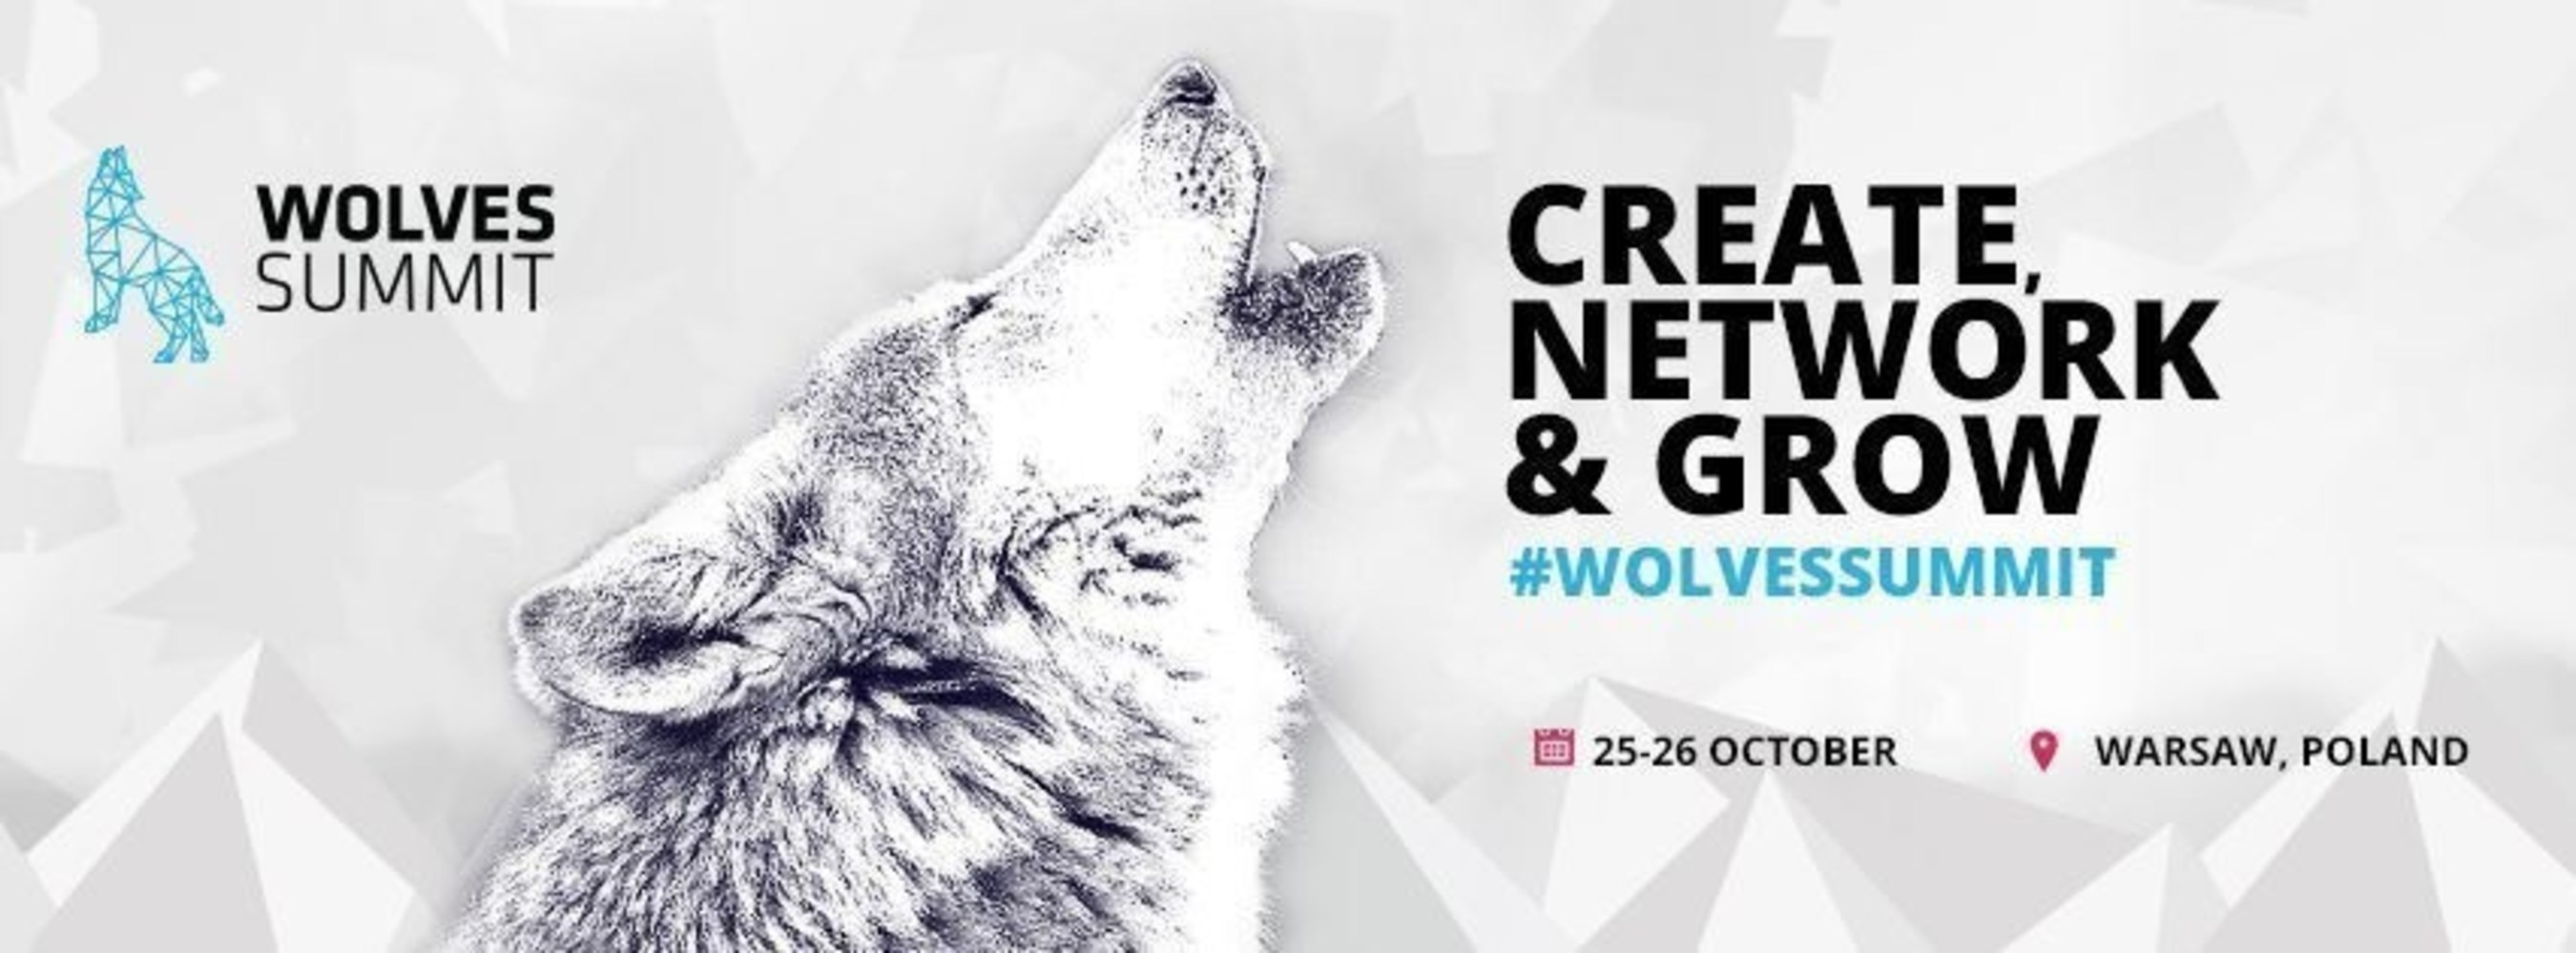 Wolves Summit - fourth edition of the biggest multinational event in Central and Eastern Europe focused on networking, innovation in technology and business. (PRNewsFoto/Wolves Summit)